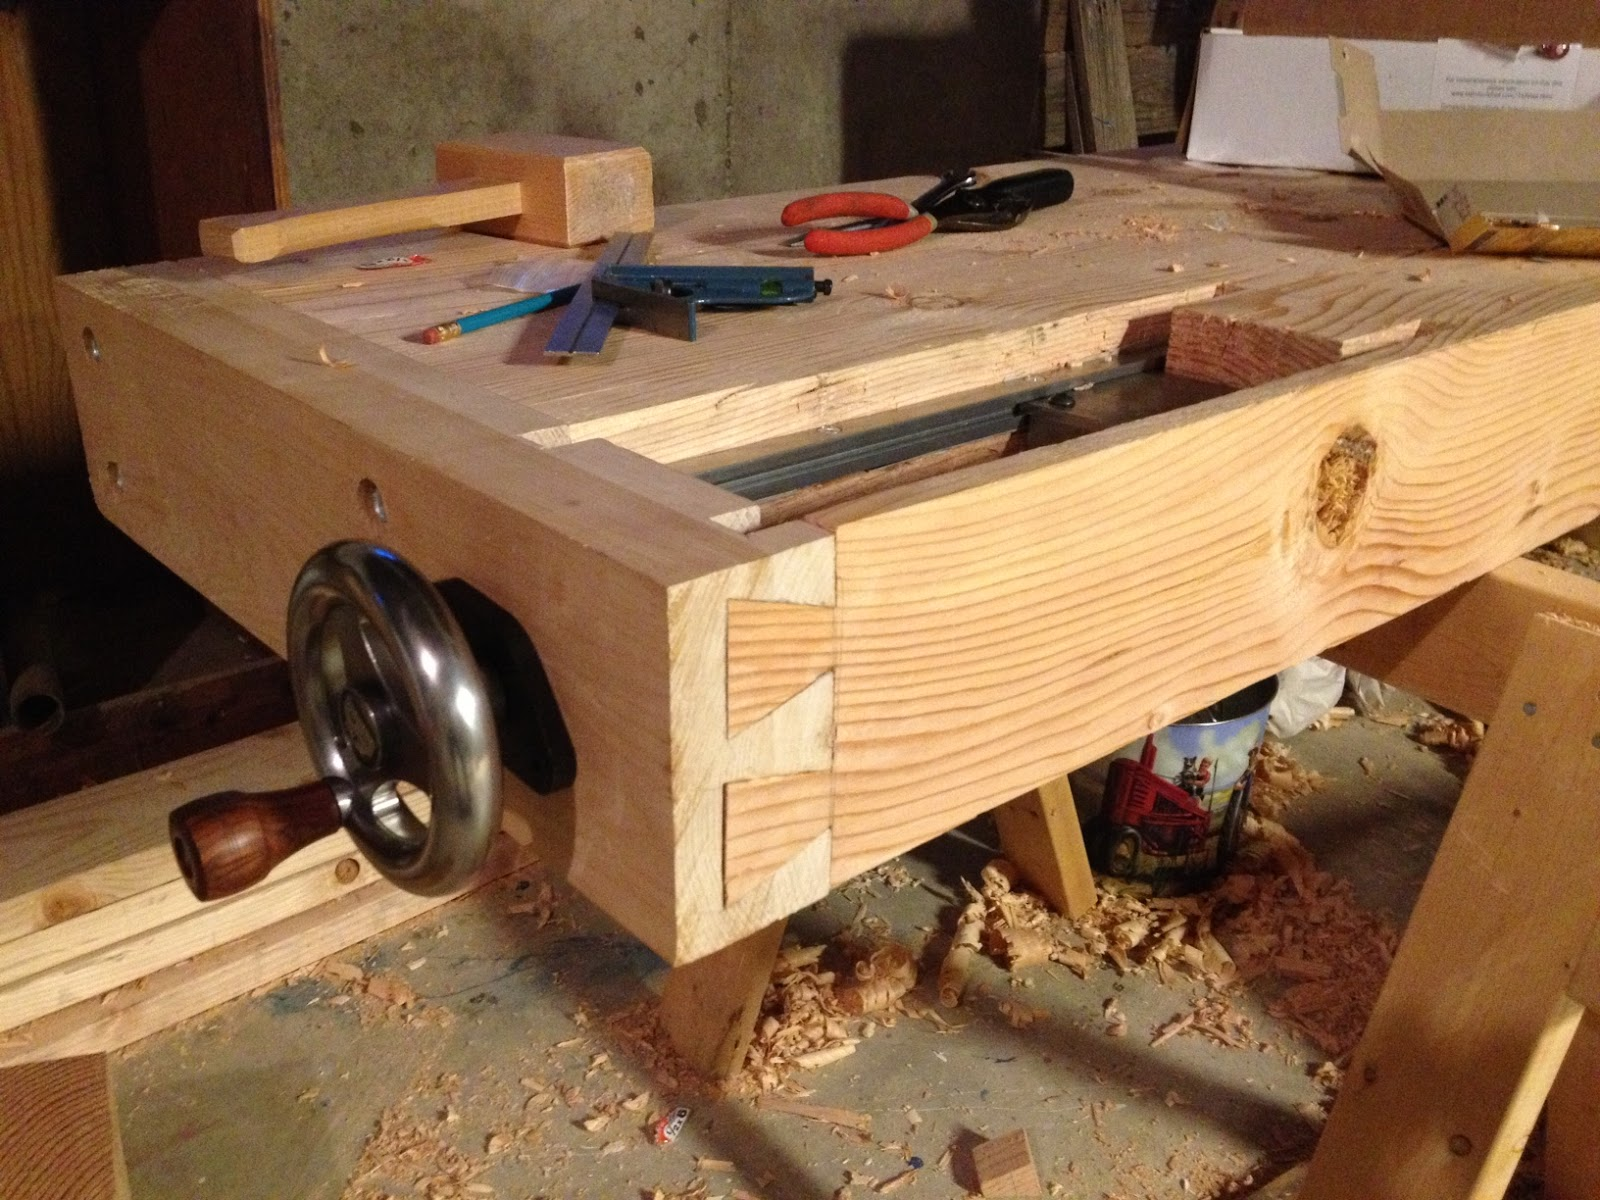 Best Bench Vise For Woodworking Making Thingz